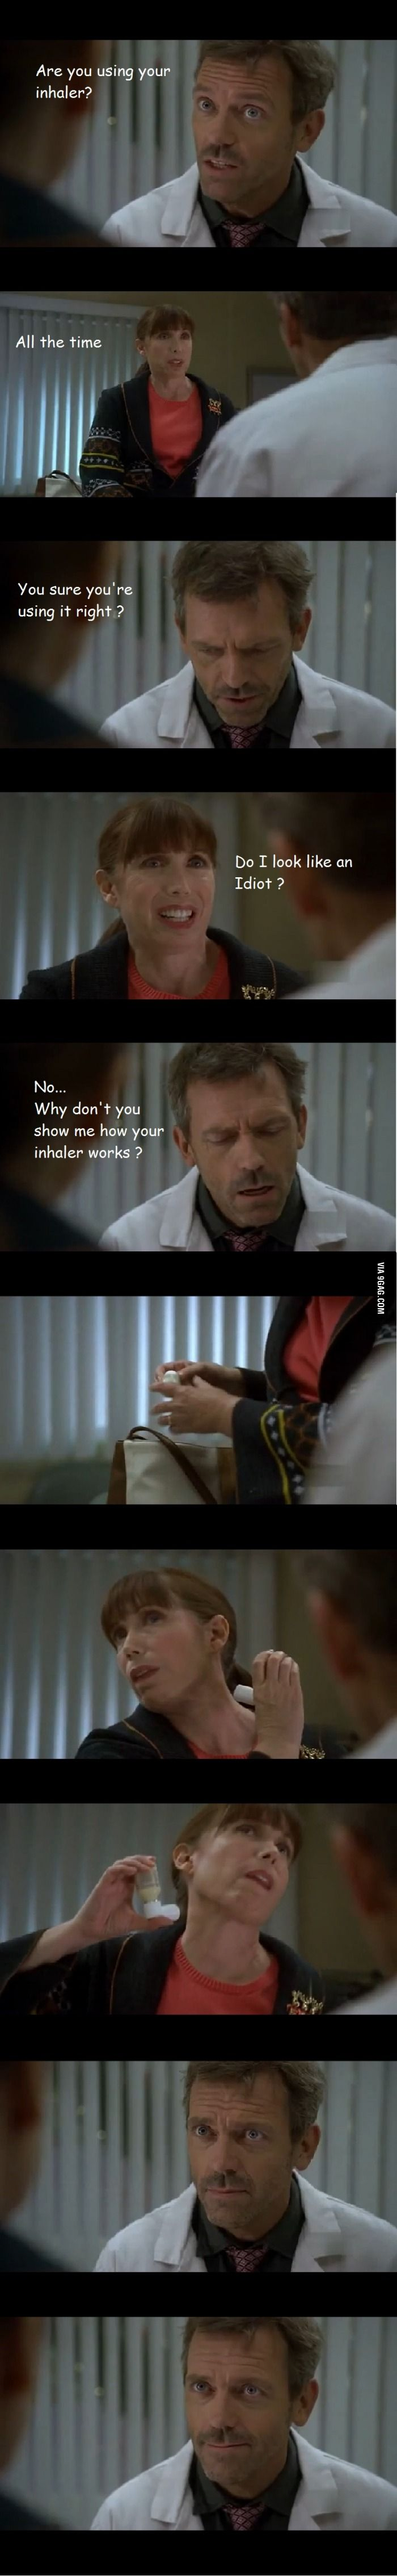 Dr. House: Are you using your inhaler? Patient: All the time. House: You sure you're using it right? Patient: Do I look like an idiot? House: No...Why don't you show me how your inhaler works? Hahah, House MD tv show quotes